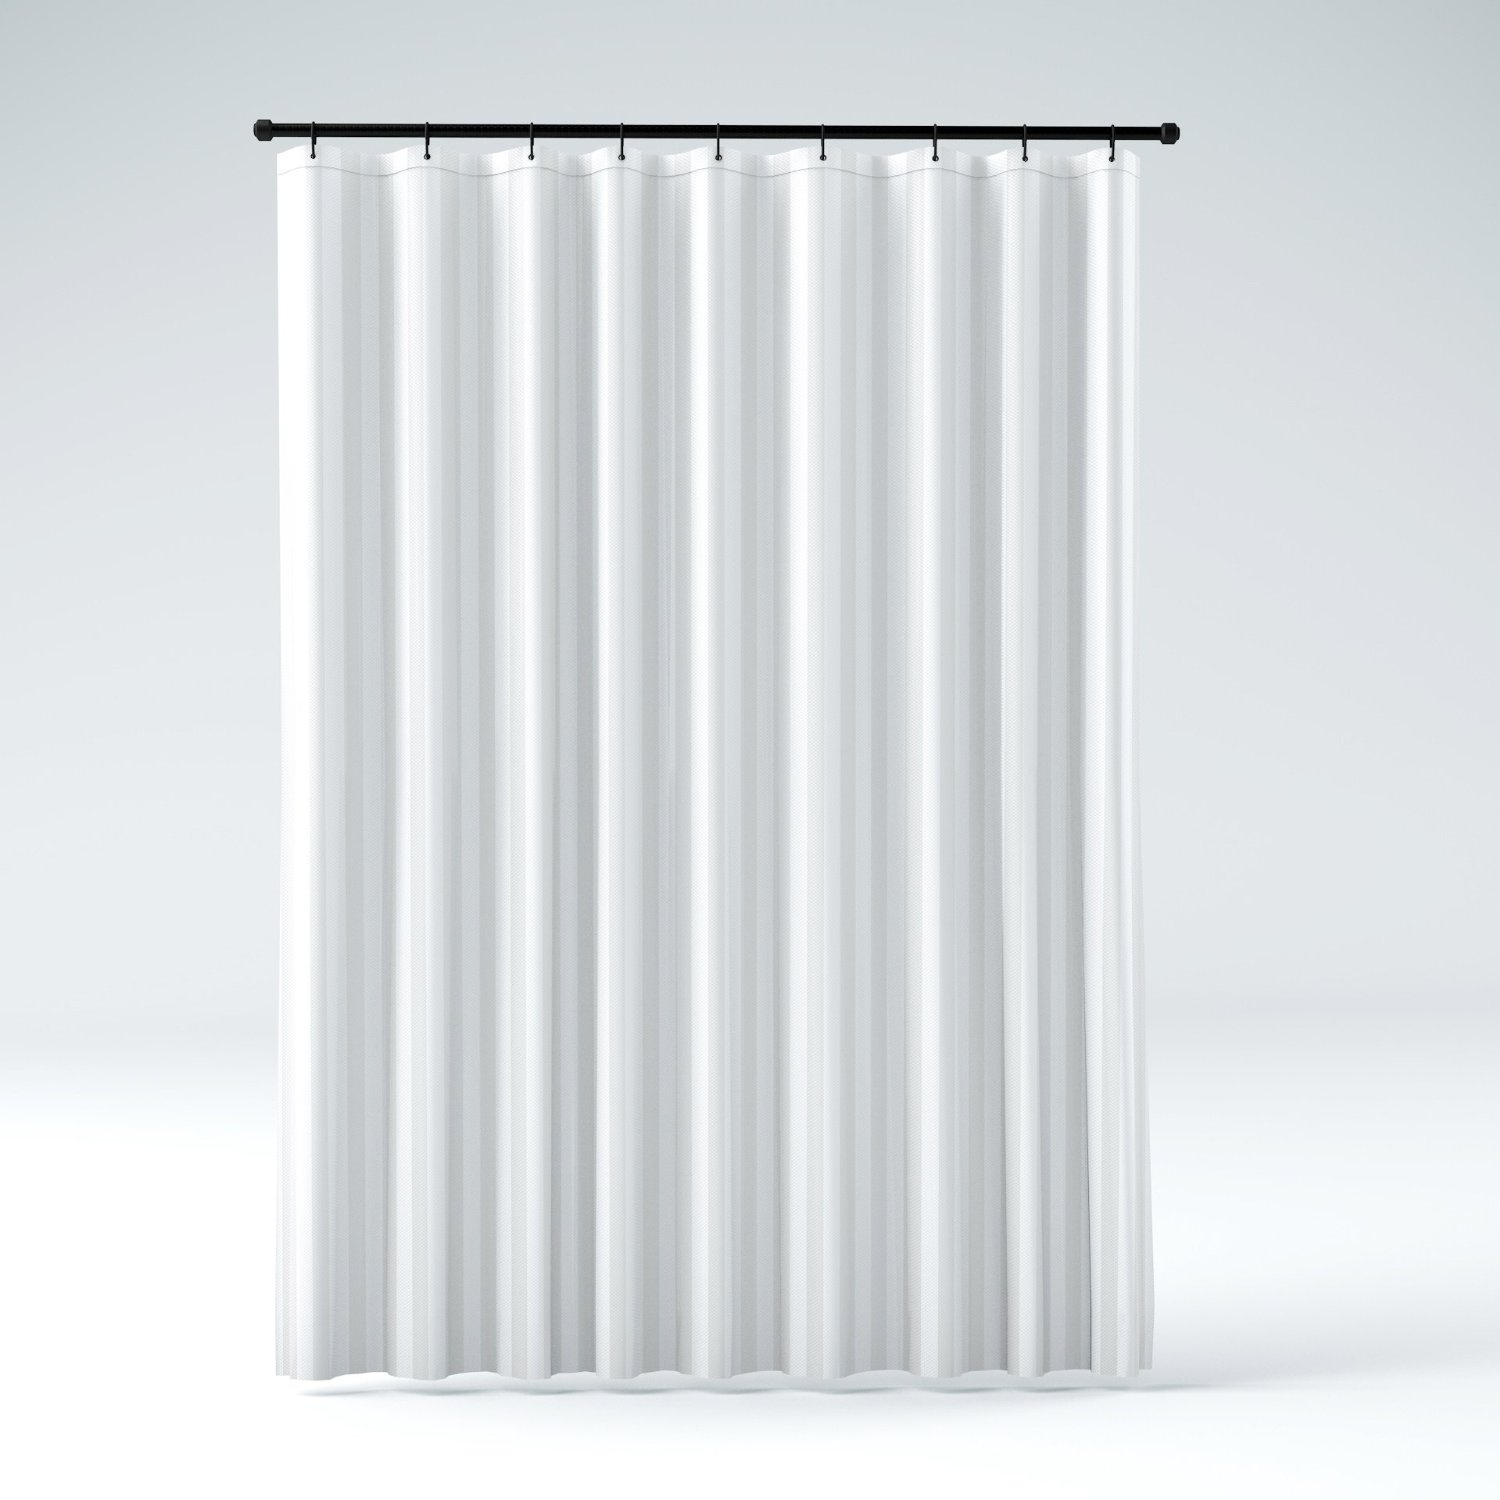 Are Polyester Shower Curtain Liners Safe Shower Curtain Ideas for size 1500 X 1500